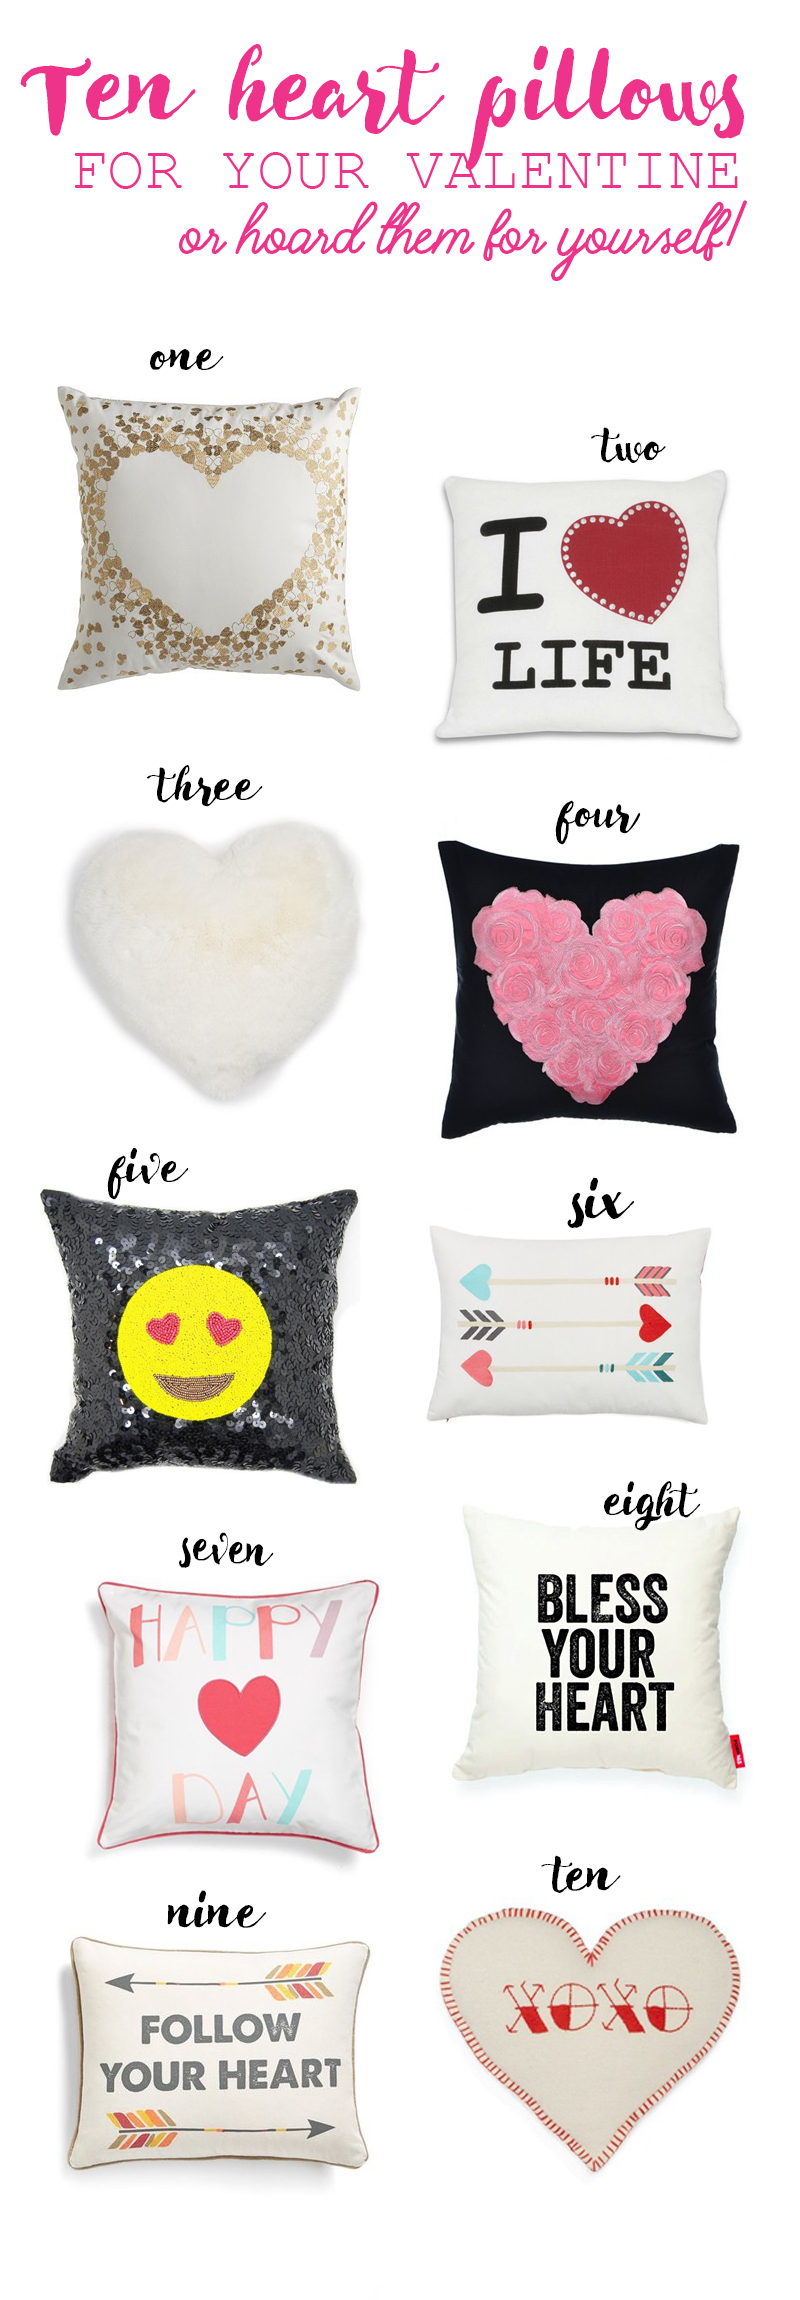 Ten heart pillows for you Valentine ! Or just hoard them for yourself...